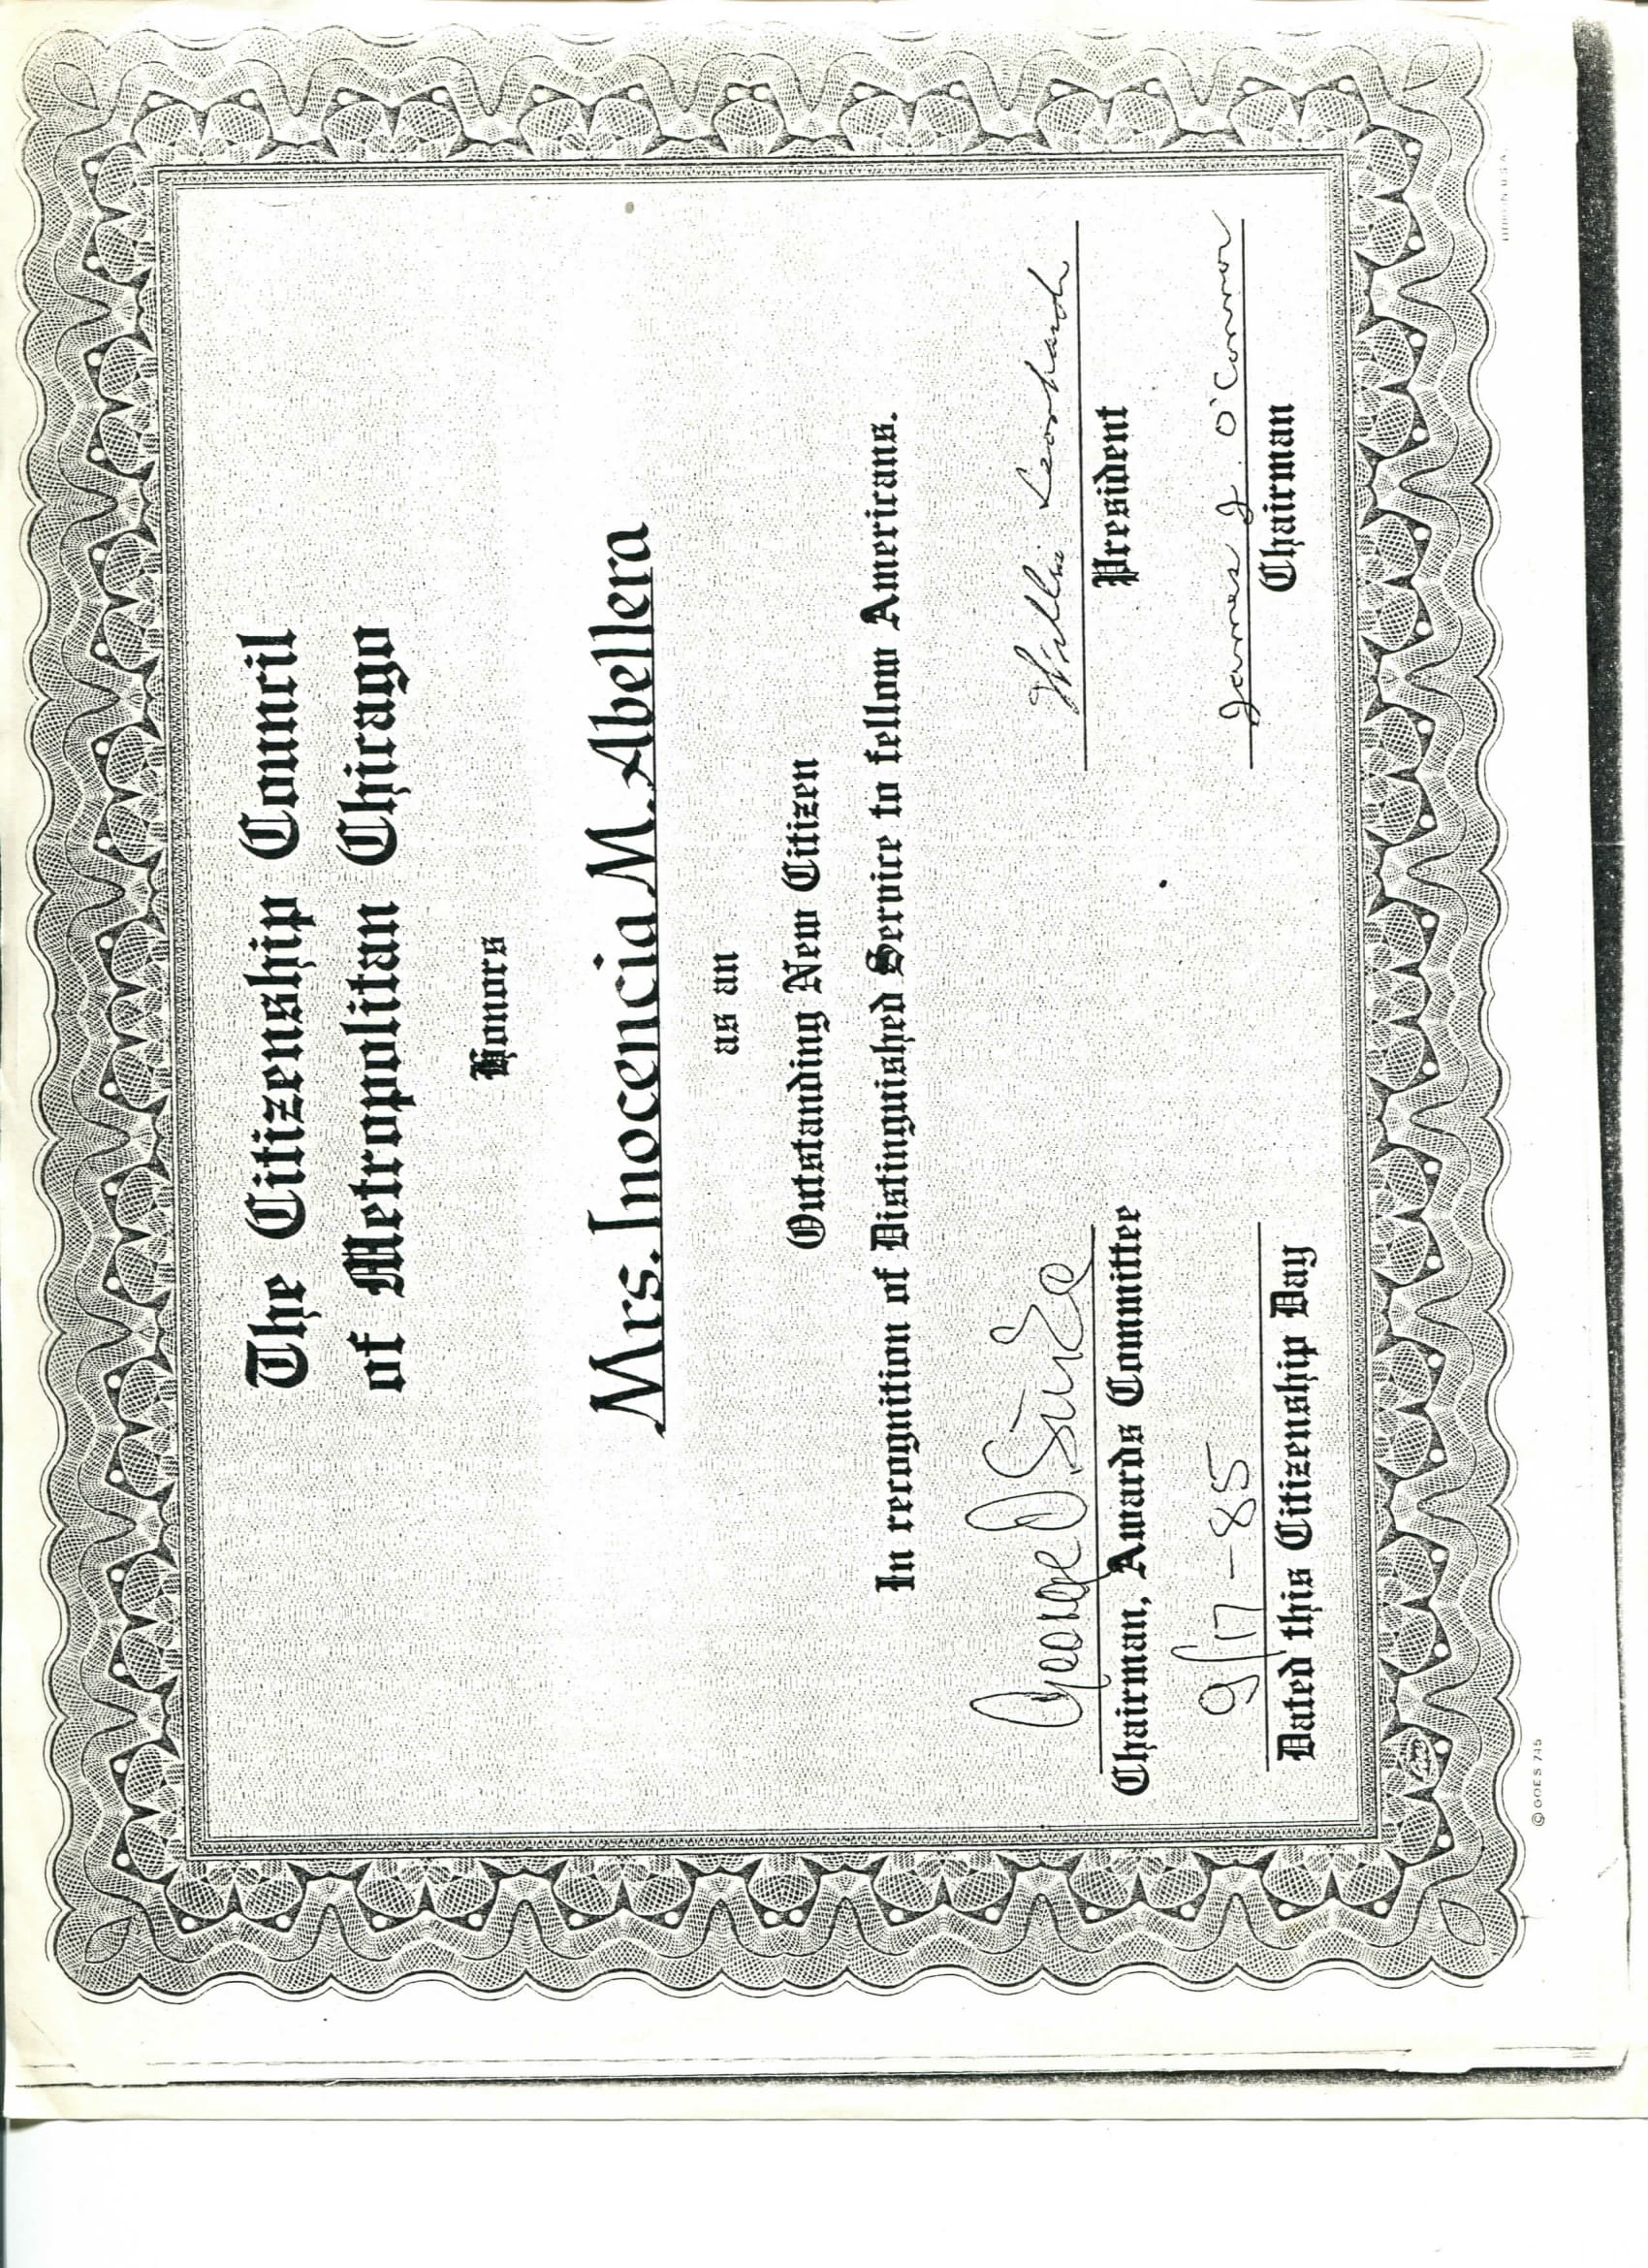 """Scanned document owned by Kirsten Surla. Certificate of """"Outstanding new citizen"""" Made Sept 17, 1985, acquired around 2017 from late grandmother's belongings. In English, honors Mrs. Inocencia M. Abellera [Surla's grandmother] as outstanding new citizen. Reminds Surla of her grandmother's civic engagement, her involvement in the community and in Chicago.   Any views, findings, conclusions, or recommendations expressed in this story do not necessarily represent those of the National Endowment for the Humanities. [Copyright] Field Museum of Natural History - CC BY-NC"""